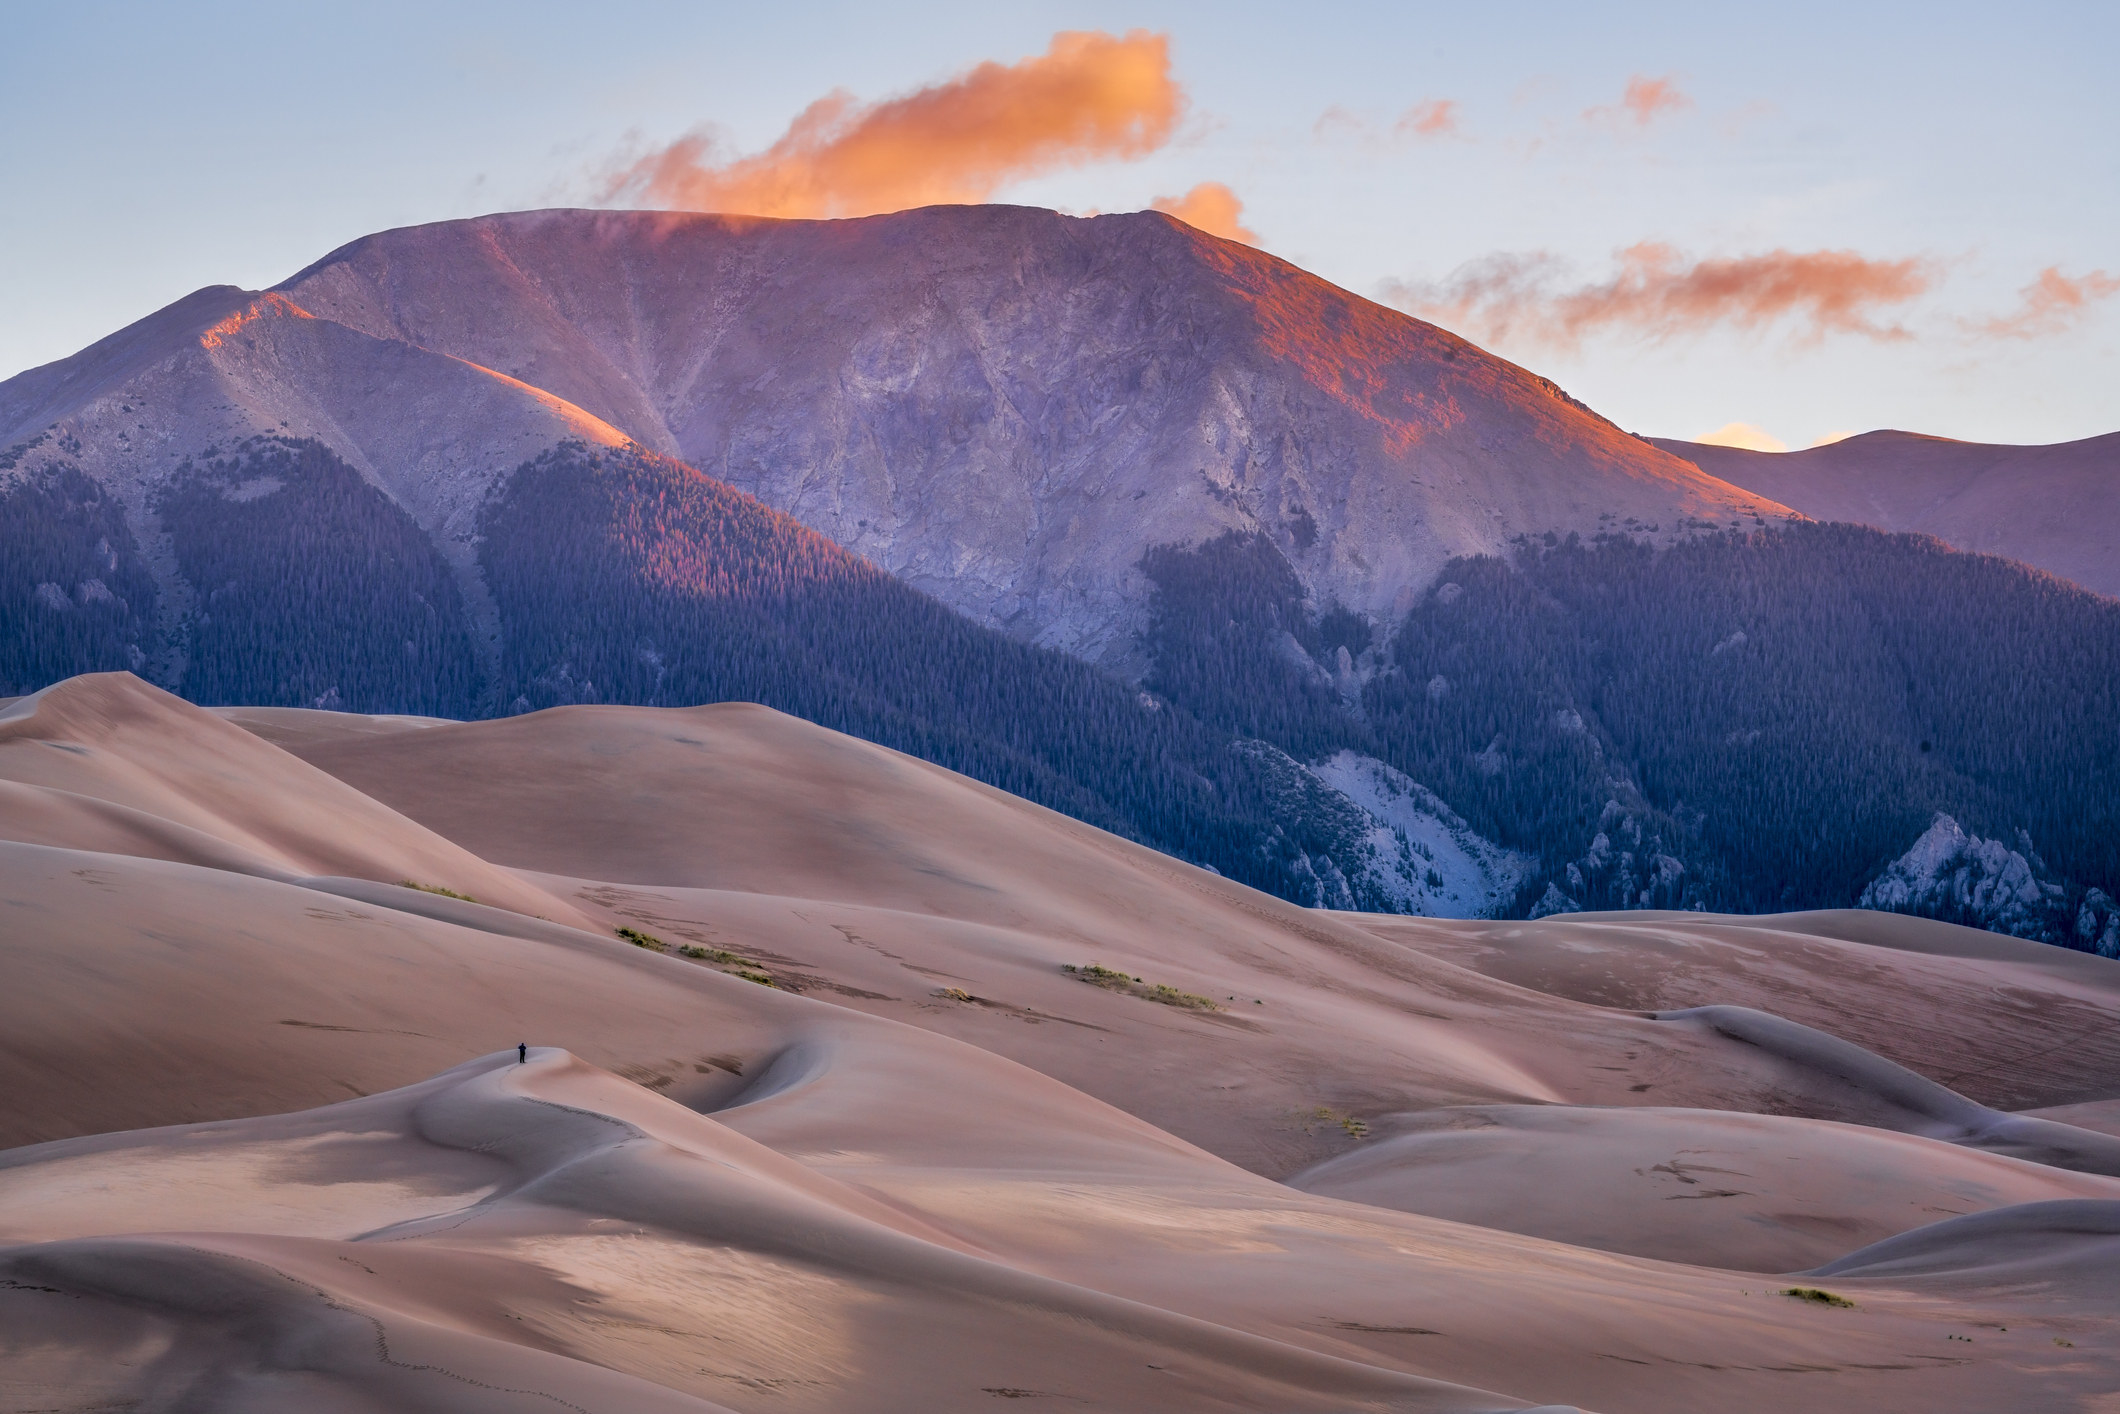 A landscape shot of Great Sand Dunes National Park at sunrise, showing pink-colored dunes against a mountain.